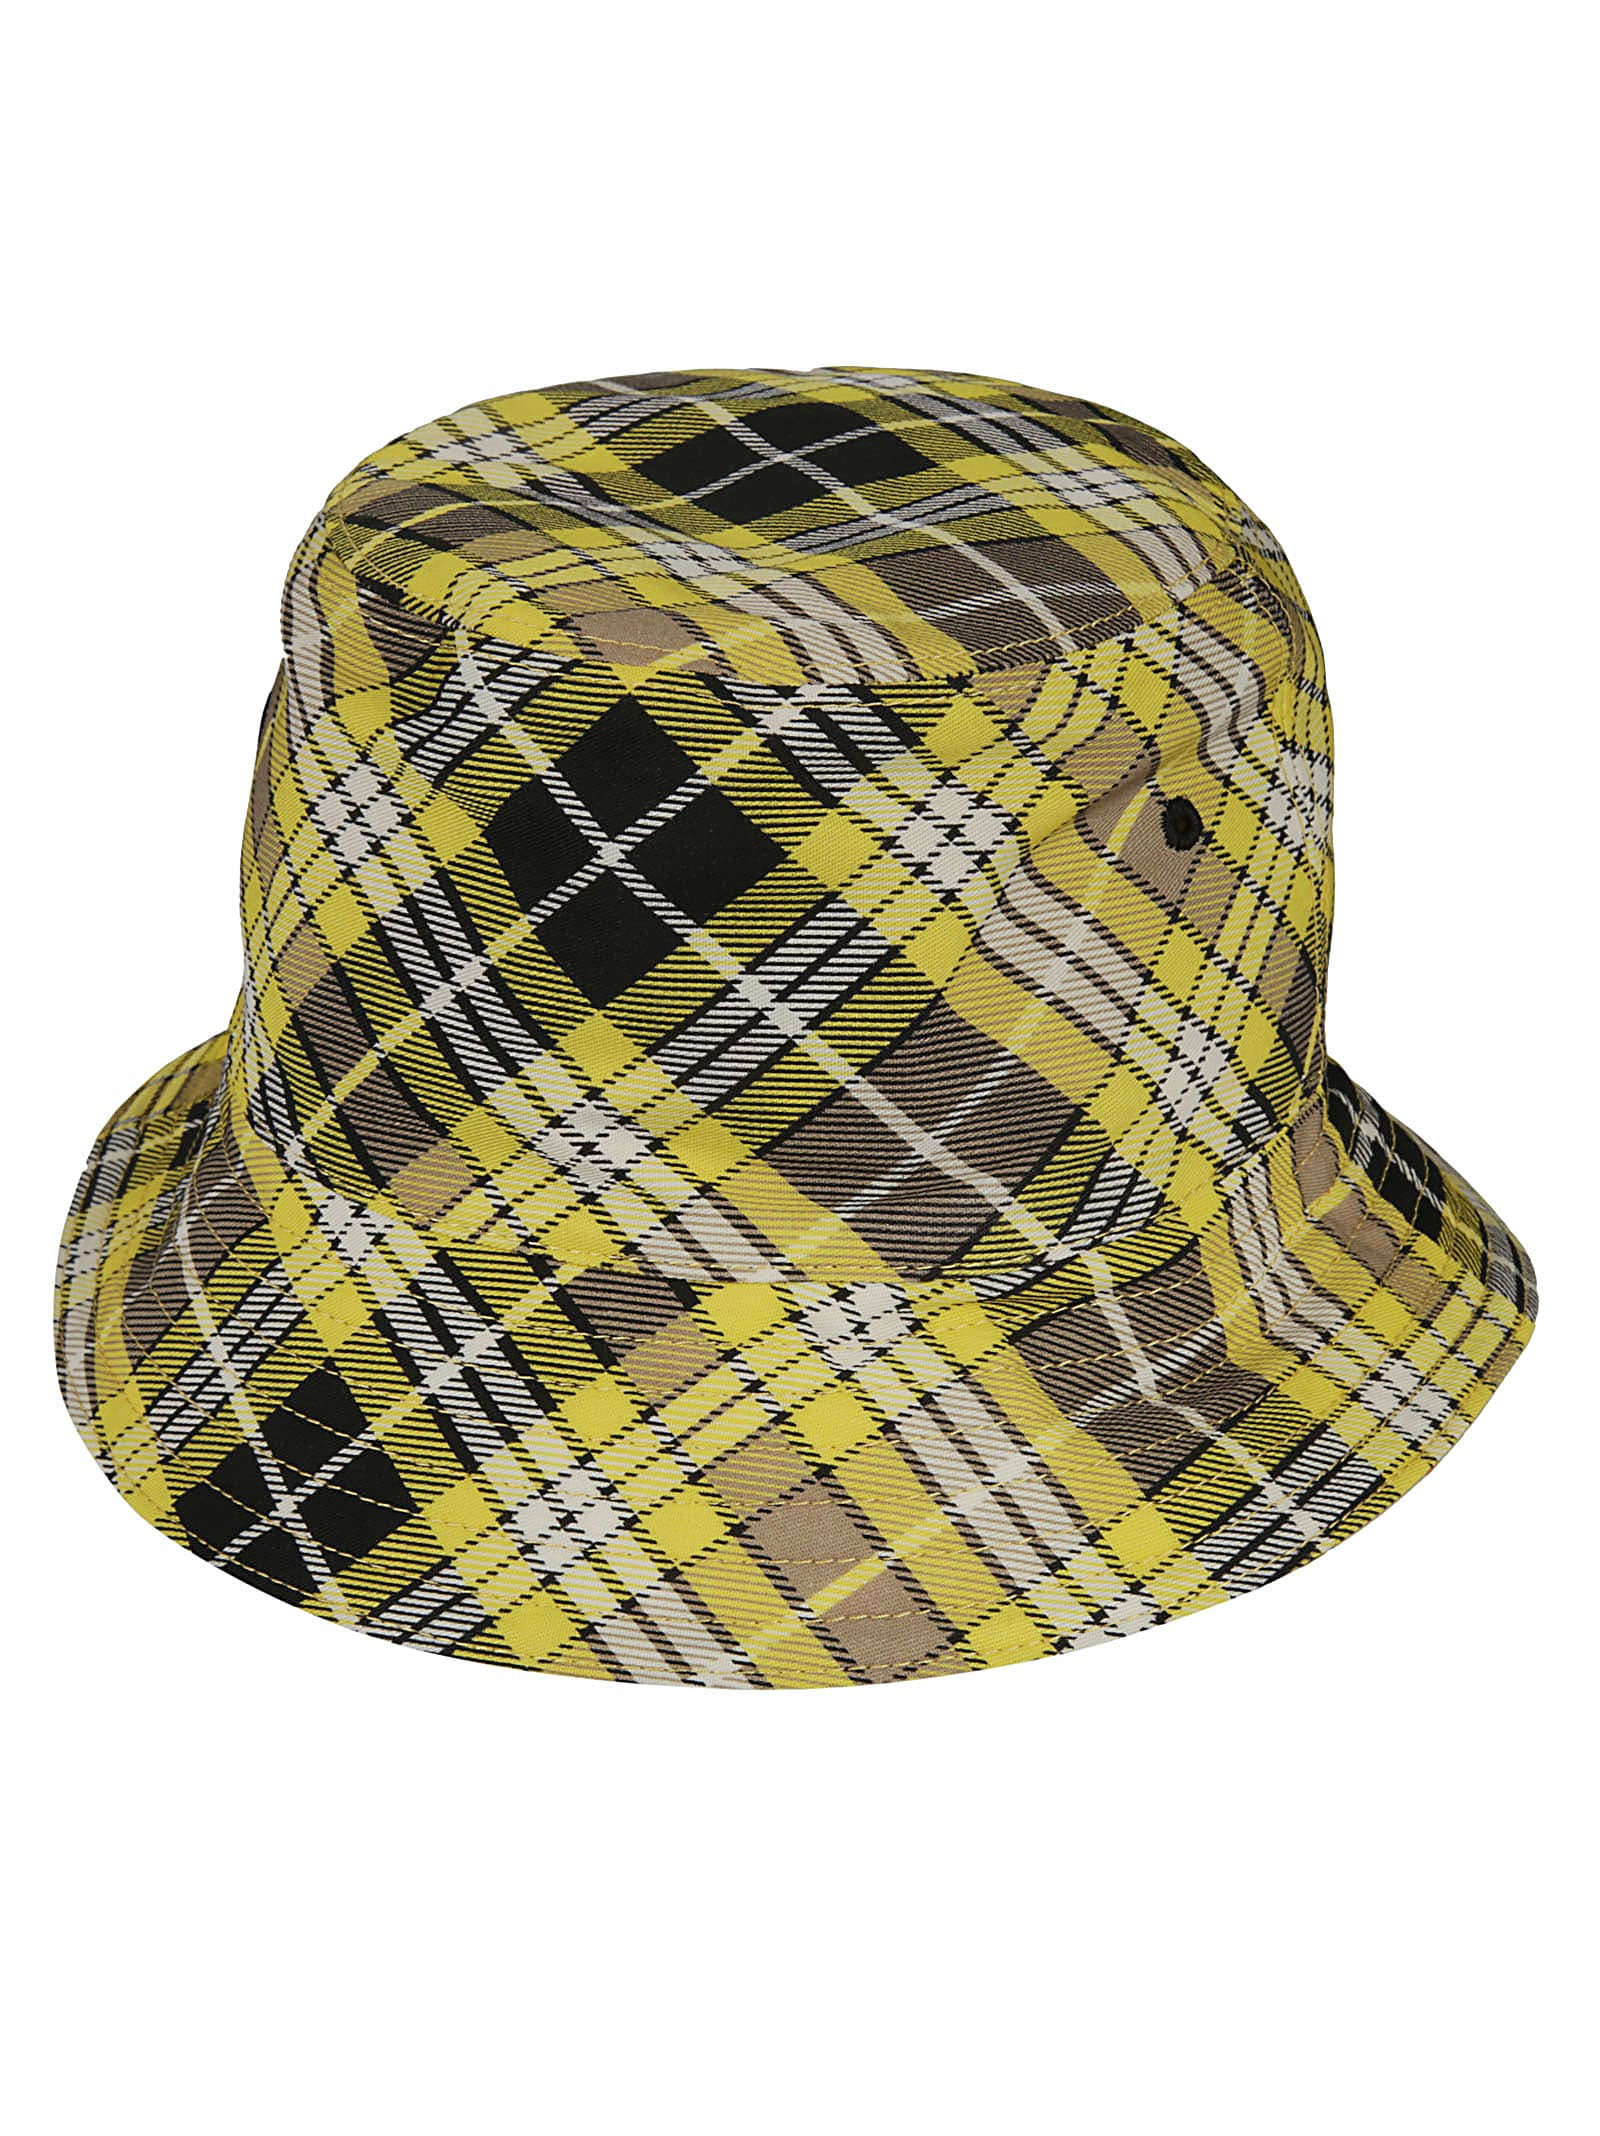 BURBERRY Hats GIANT CHECK REVERSIBLE BUCKET HAT